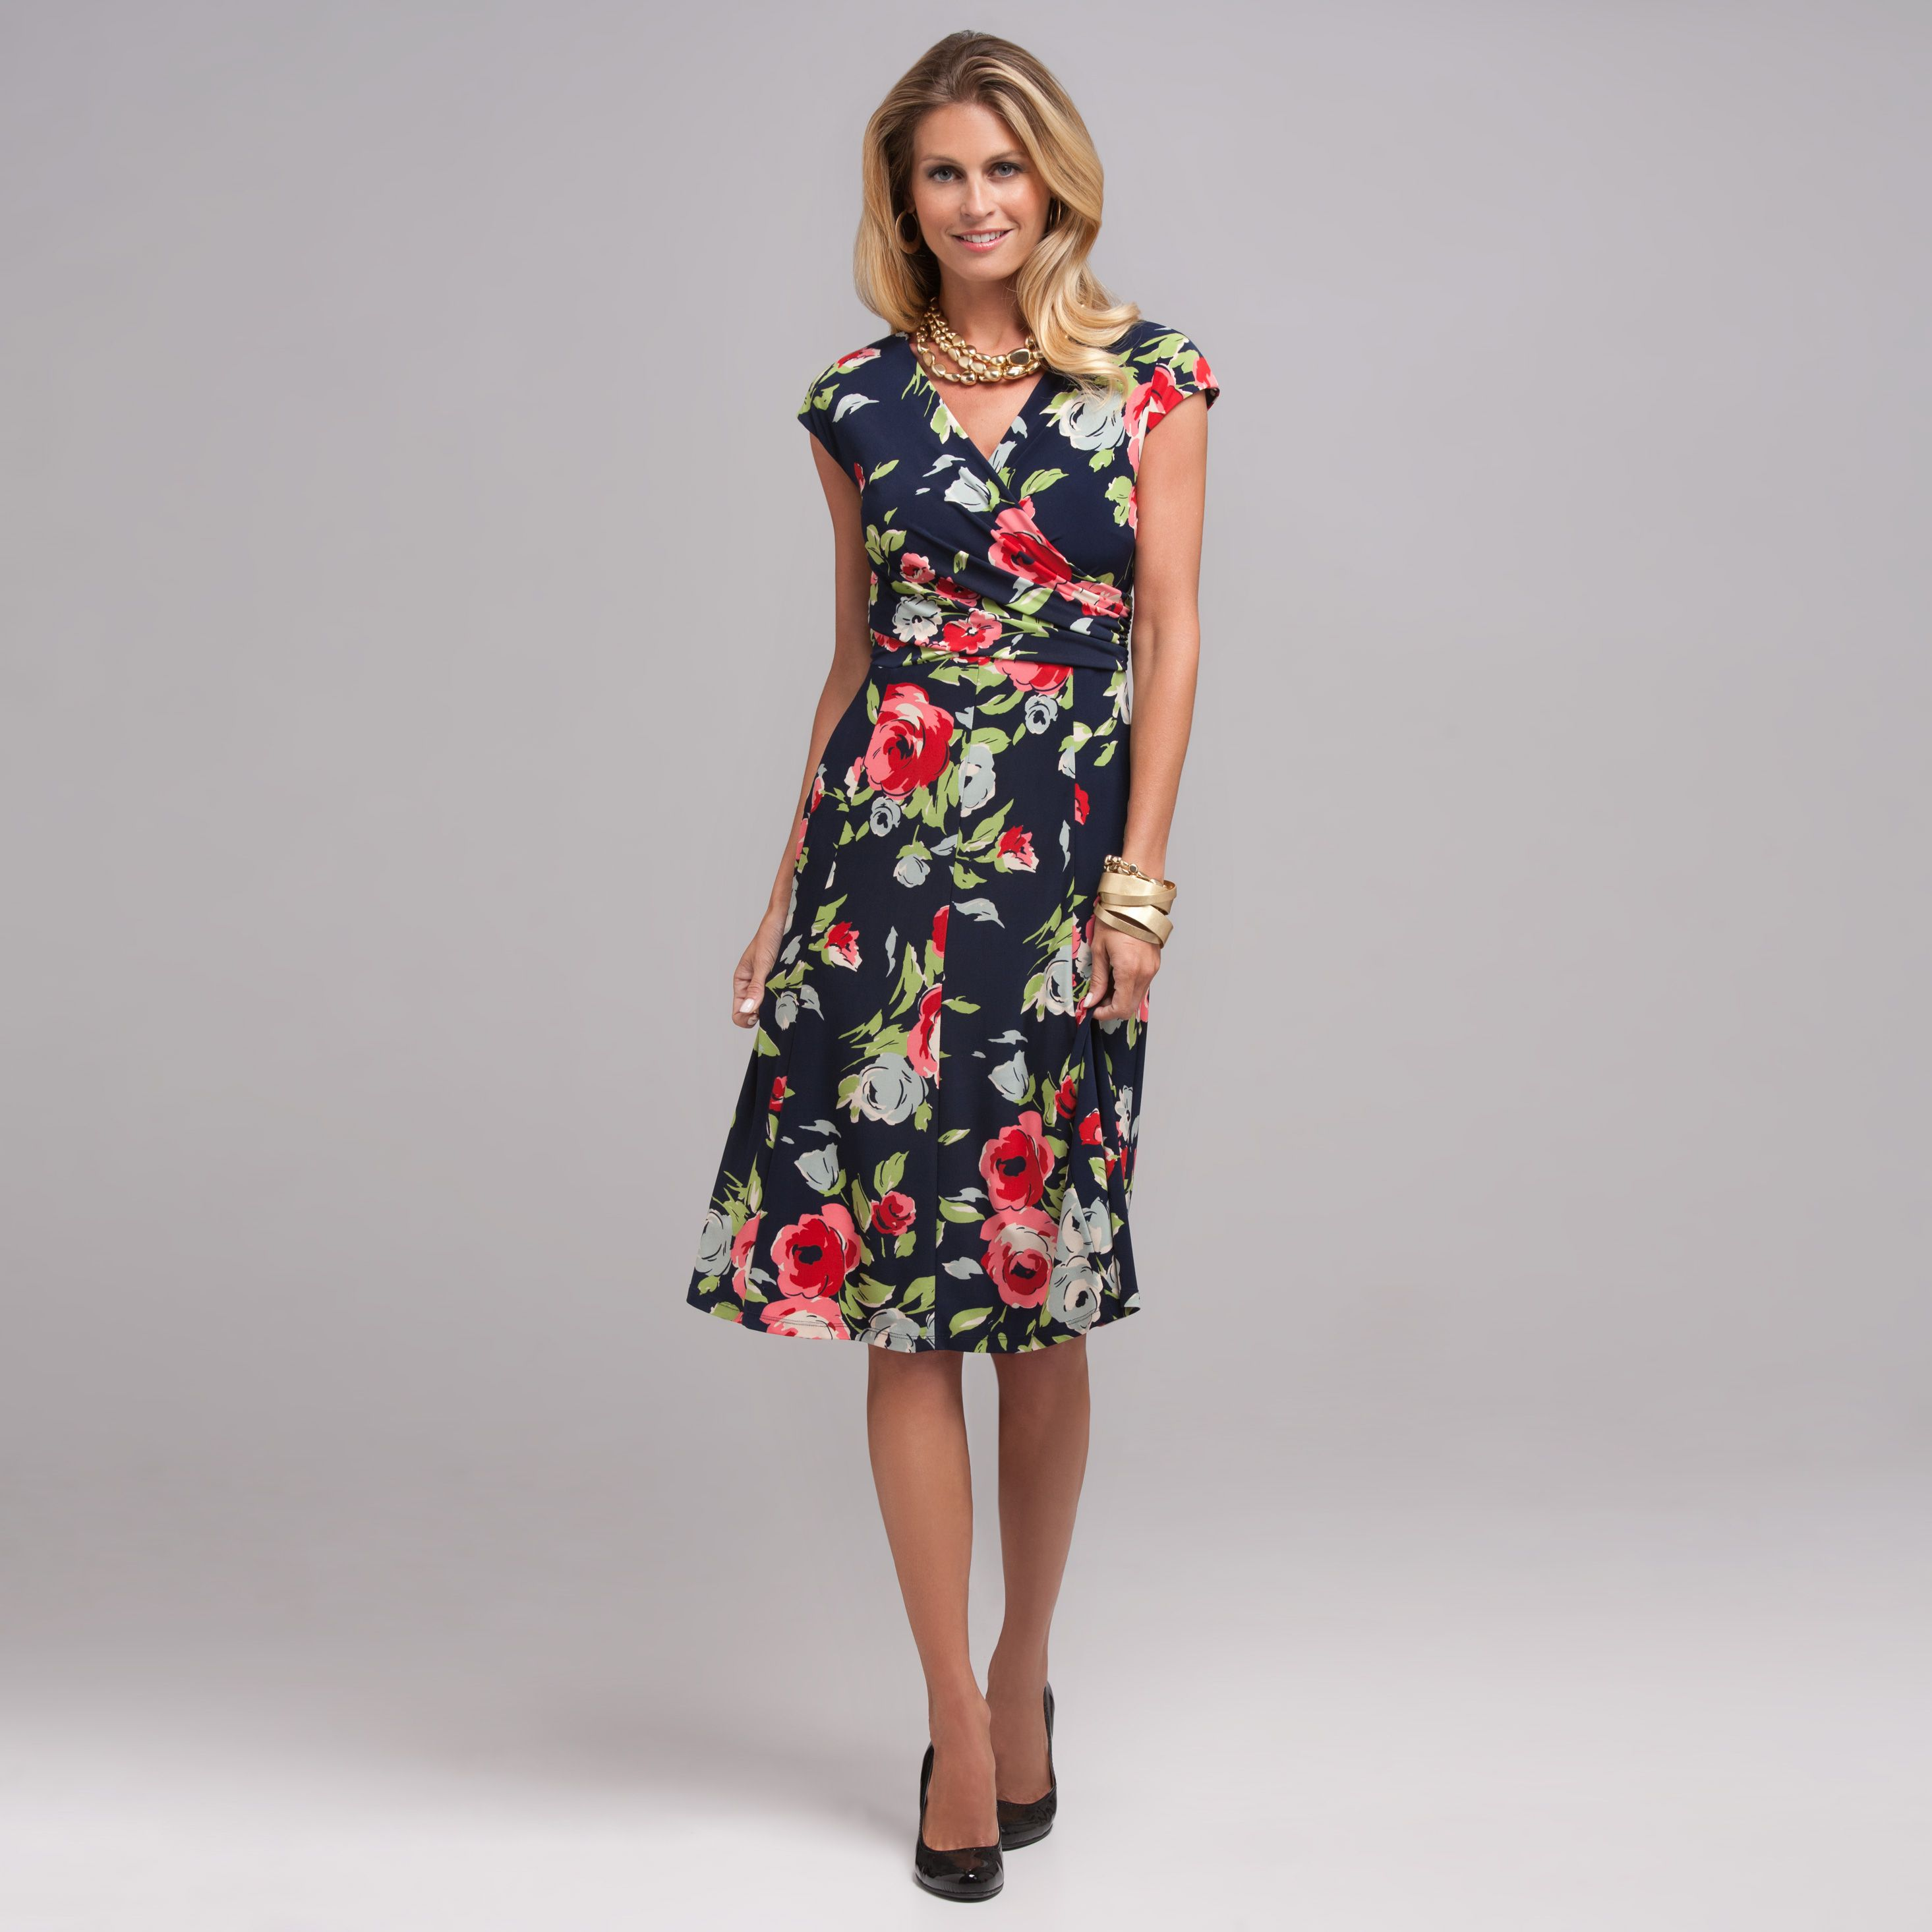 Stylish summer fashion for women of a certain age | Dressing, The ...